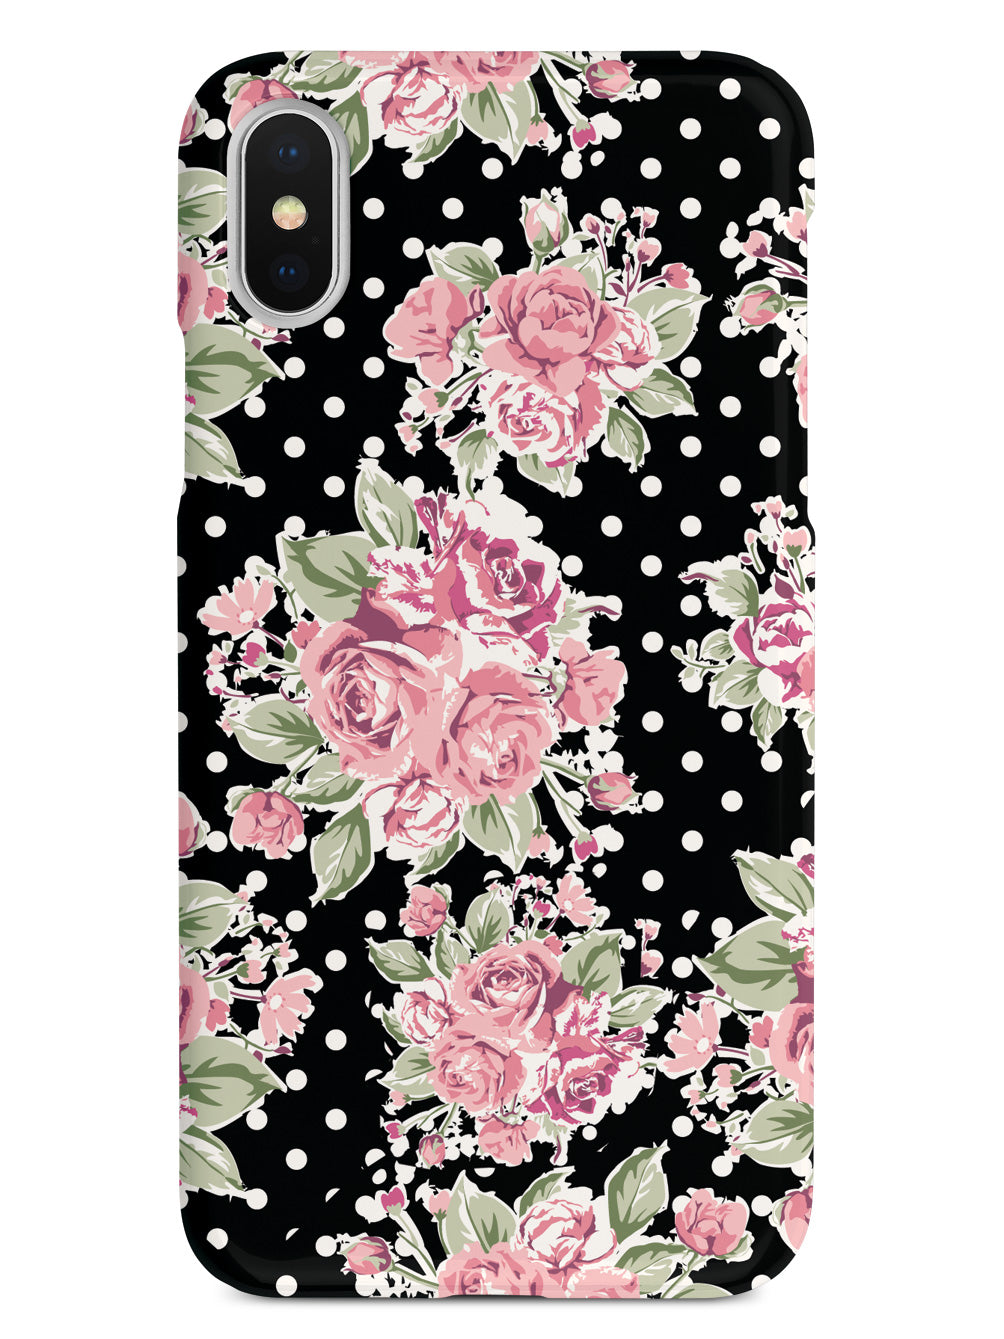 Vintage Polka Dot Flower Pattern Case